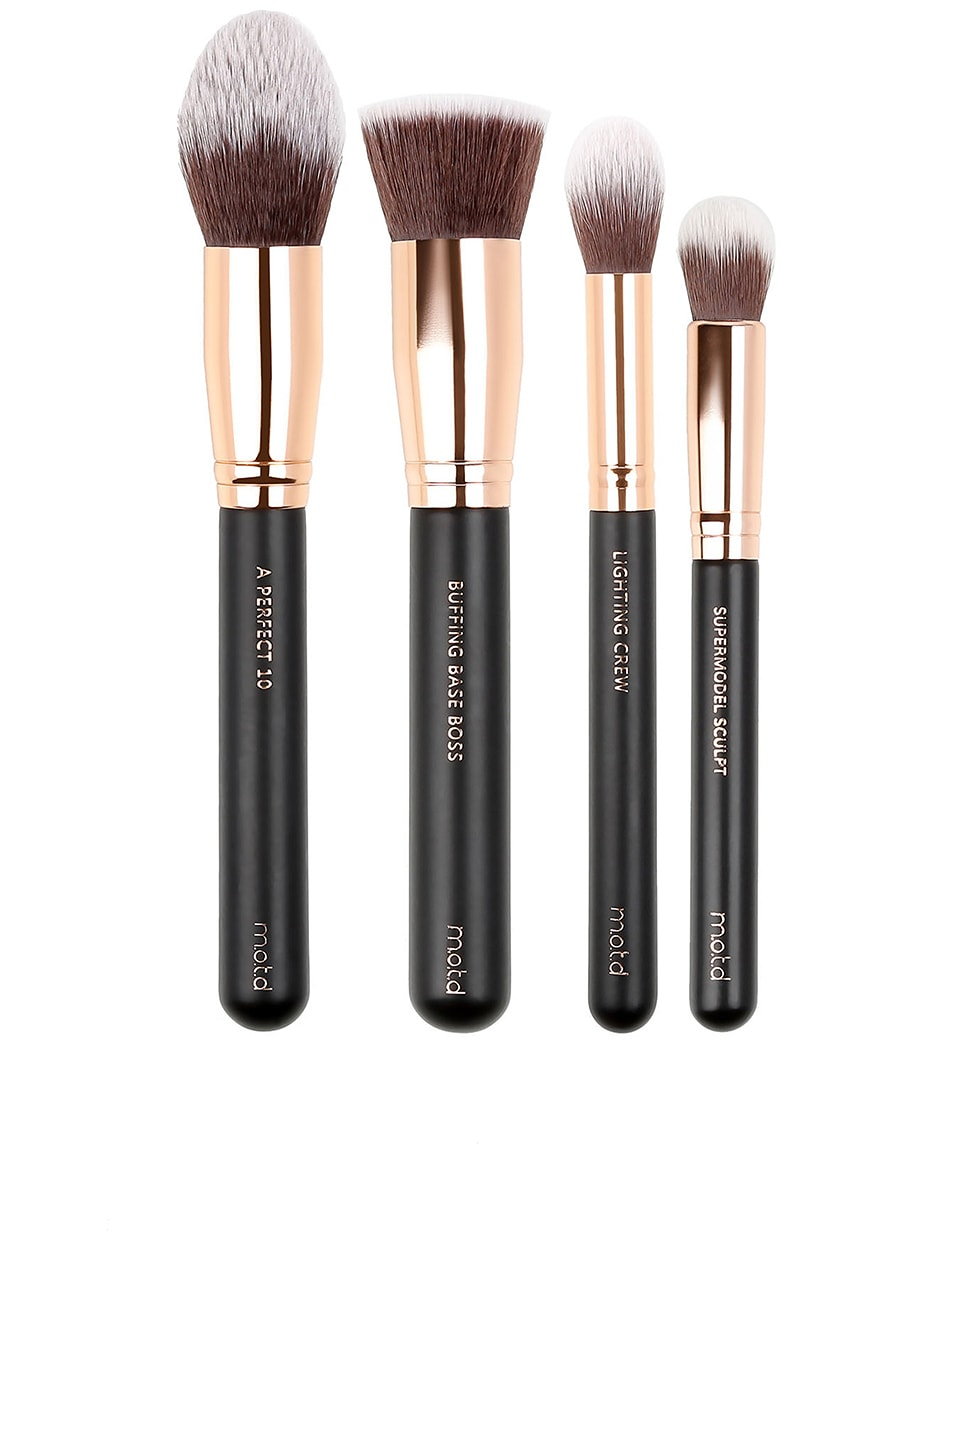 M.O.T.D. COSMETICS CHIC HAPPENS CONTOUR AND HIGHLIGHT MAKEUP BRUSH SET